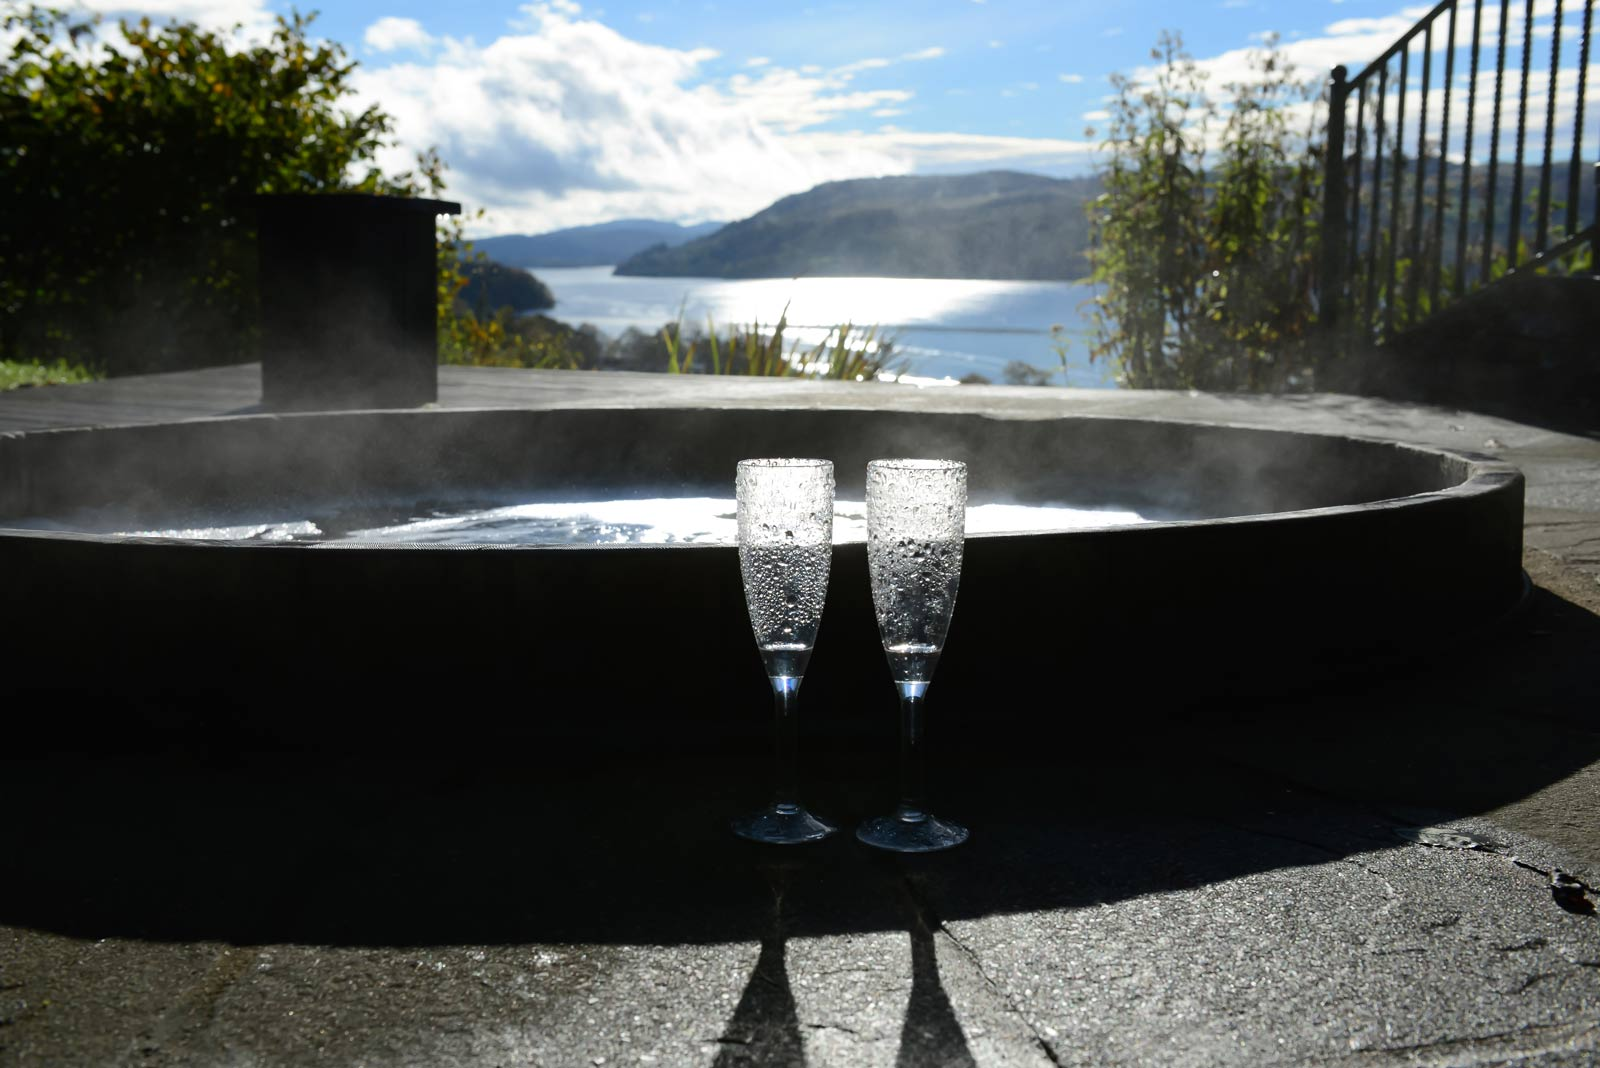 Samling Hot Tub Champagne Glasses